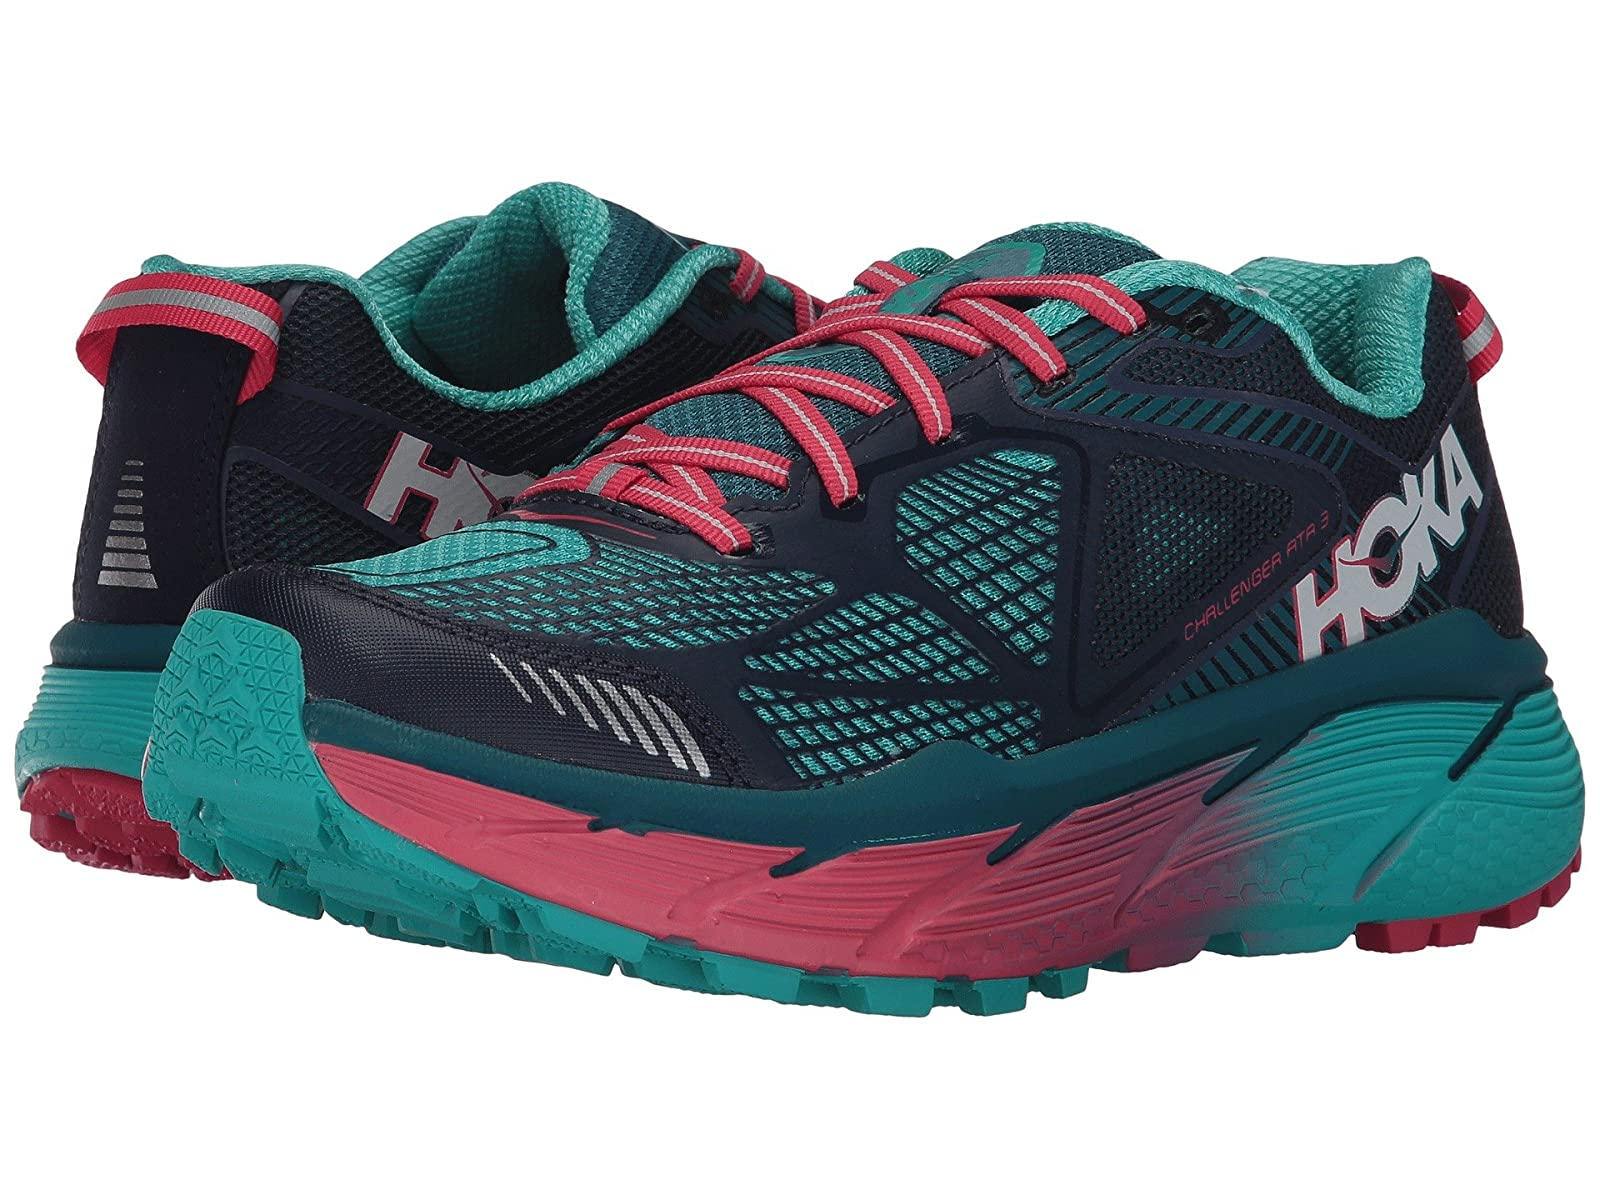 Hoka One One Challenger ATR 3Atmospheric grades have affordable shoes